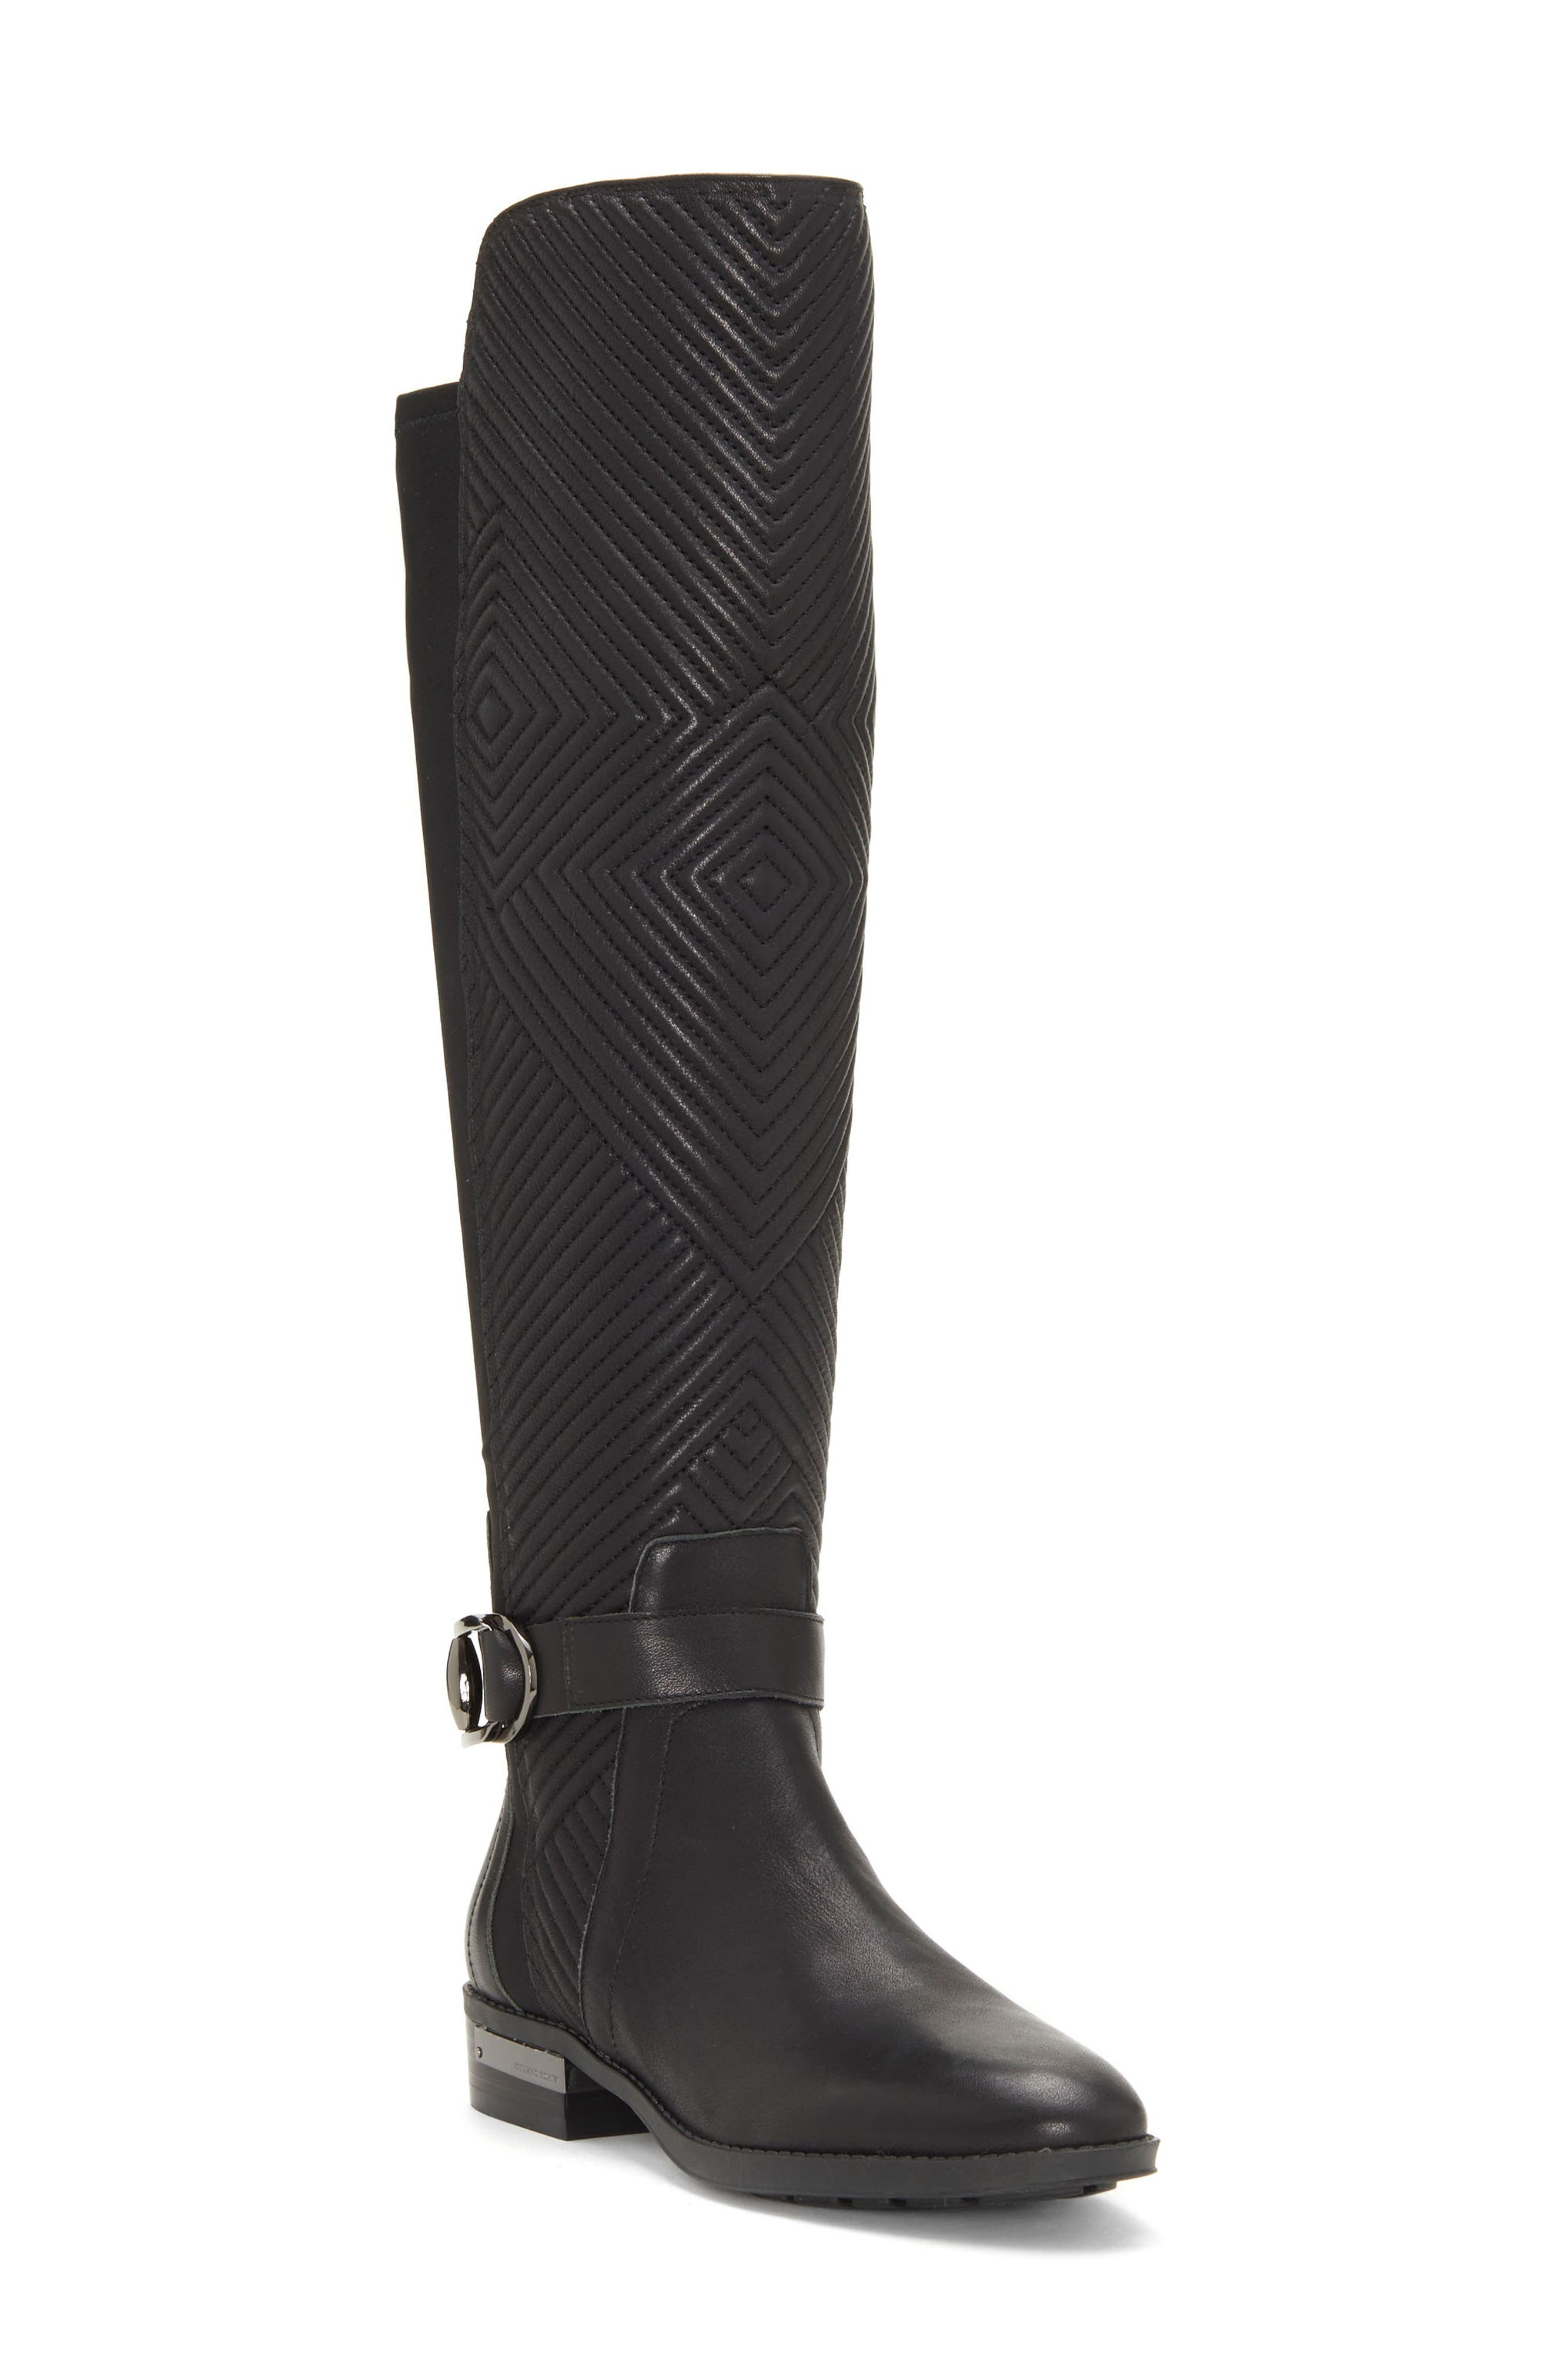 Pordalia Over-the-Knee Boot,                             Main thumbnail 1, color,                             BLACK LEATHER WIDE